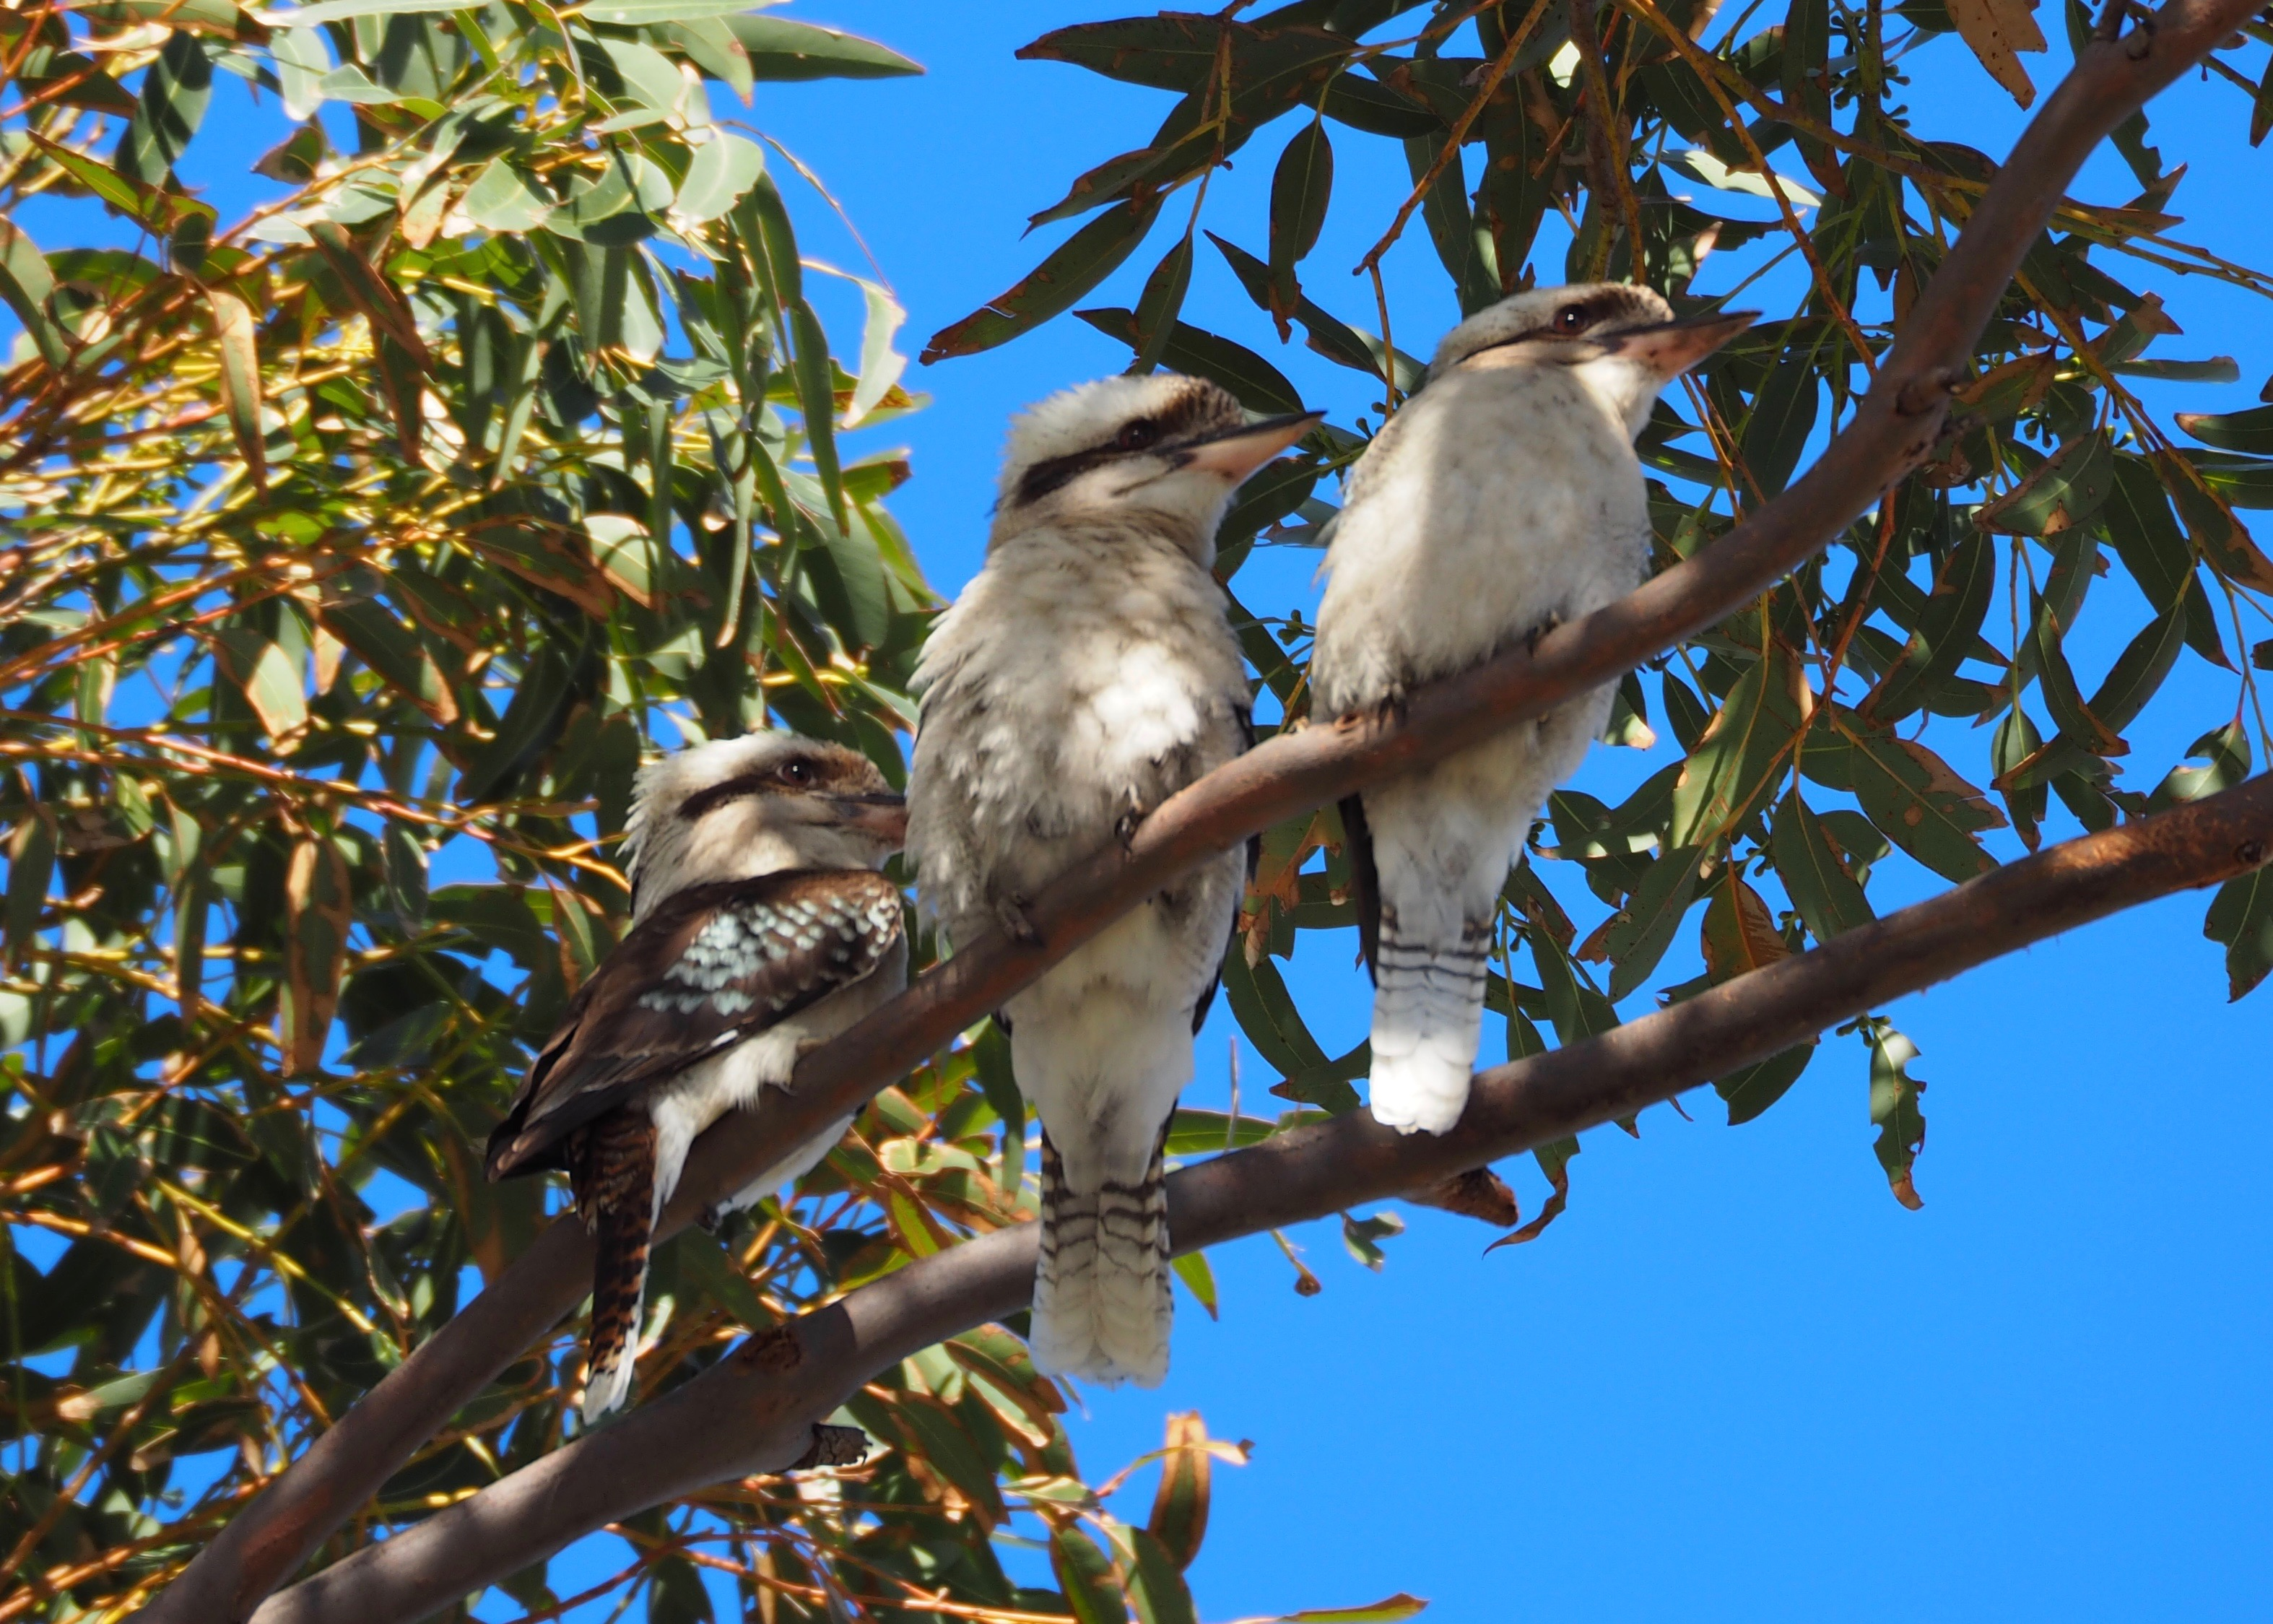 Kookaburras sing in the old Gumtree